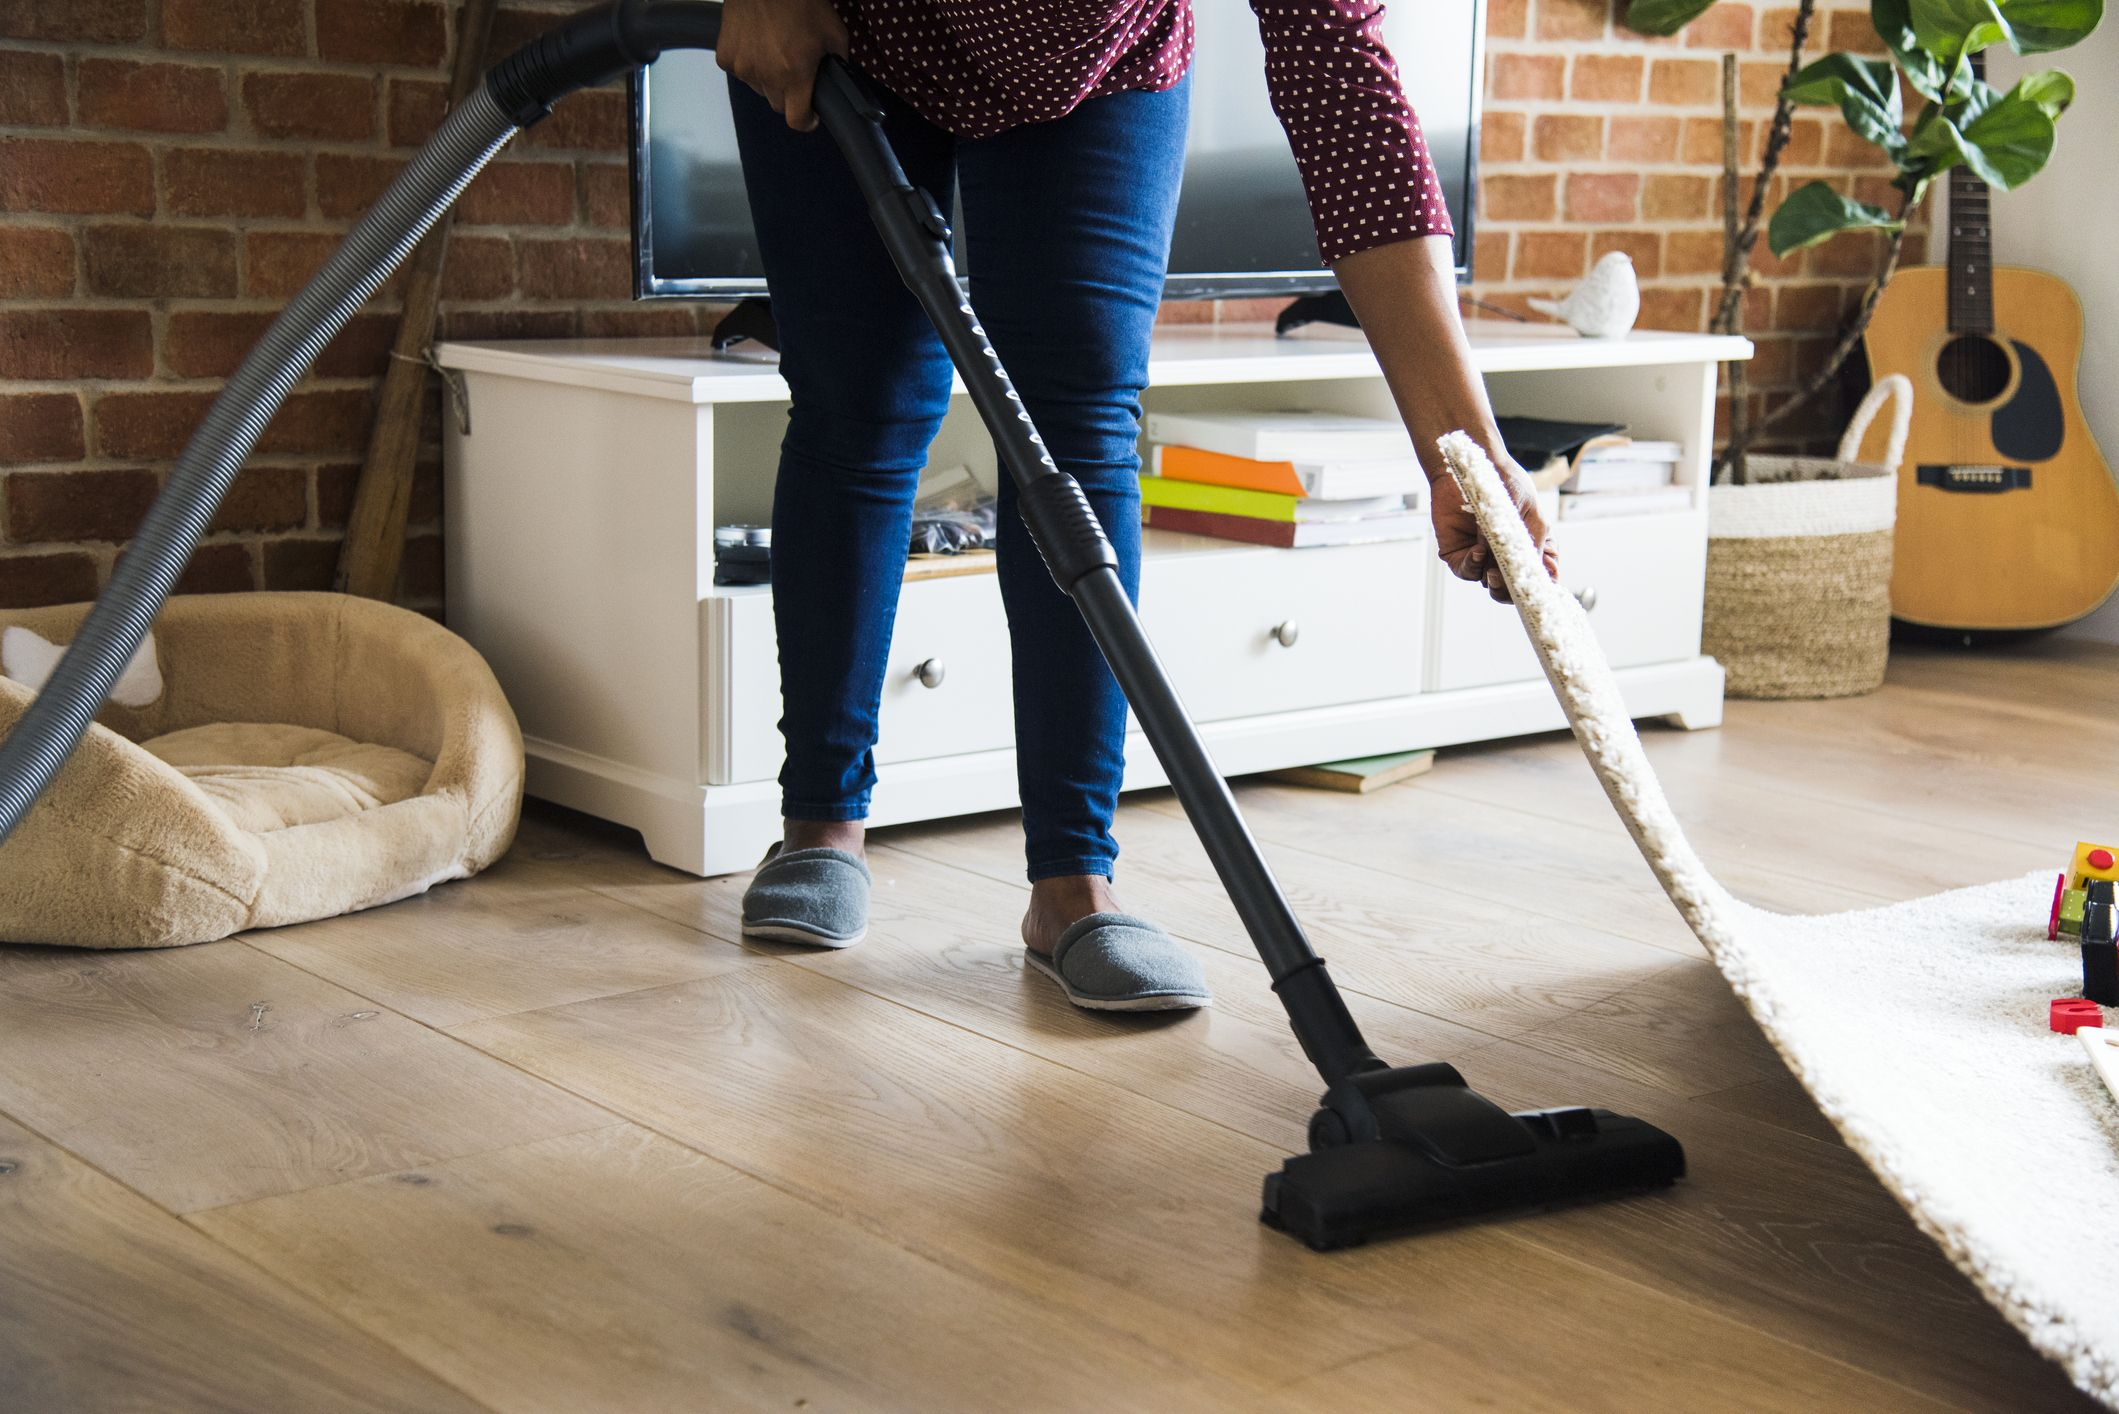 black-woman-is-cleaning-room-royalty-free-image-937992556-1565958482